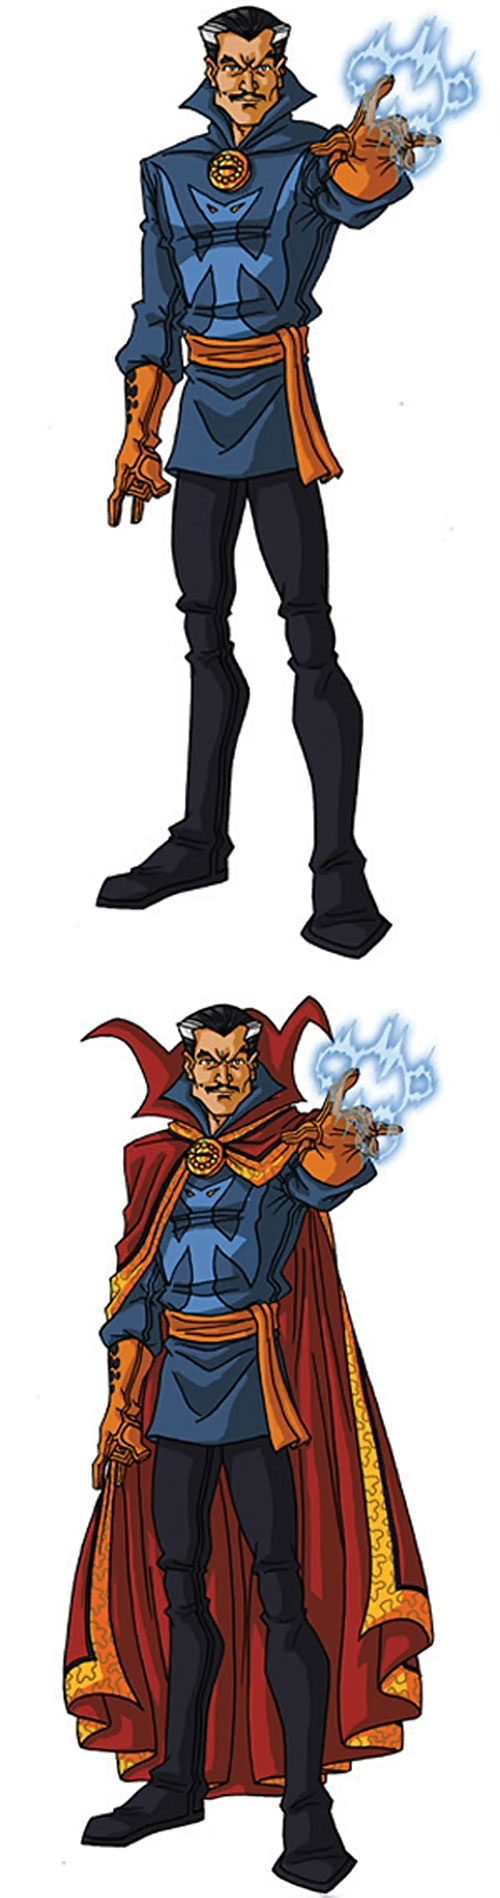 Doctor Strange (Marvel Comics) by RonnieThunderbolts